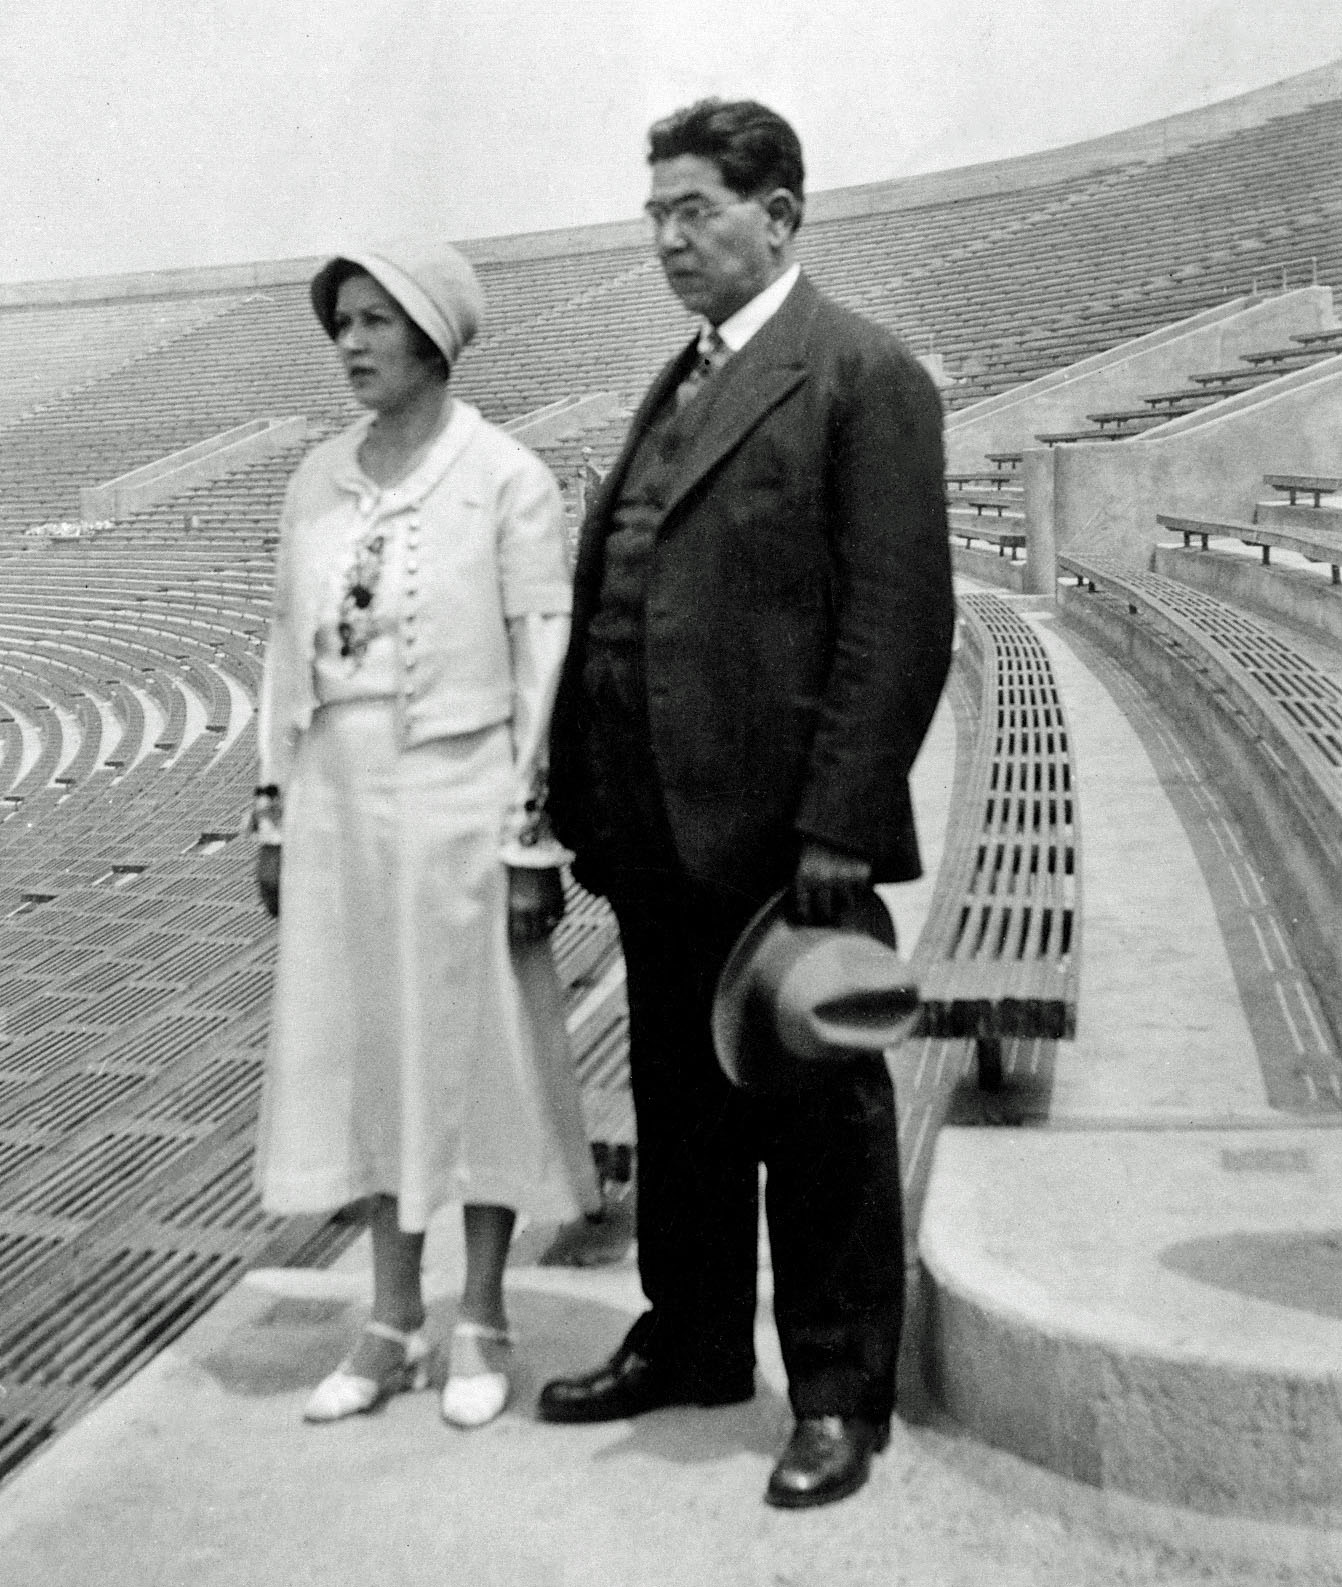 Mildred Hoover Leonard and Charles Pleasant Myron Picard,  circa 1935